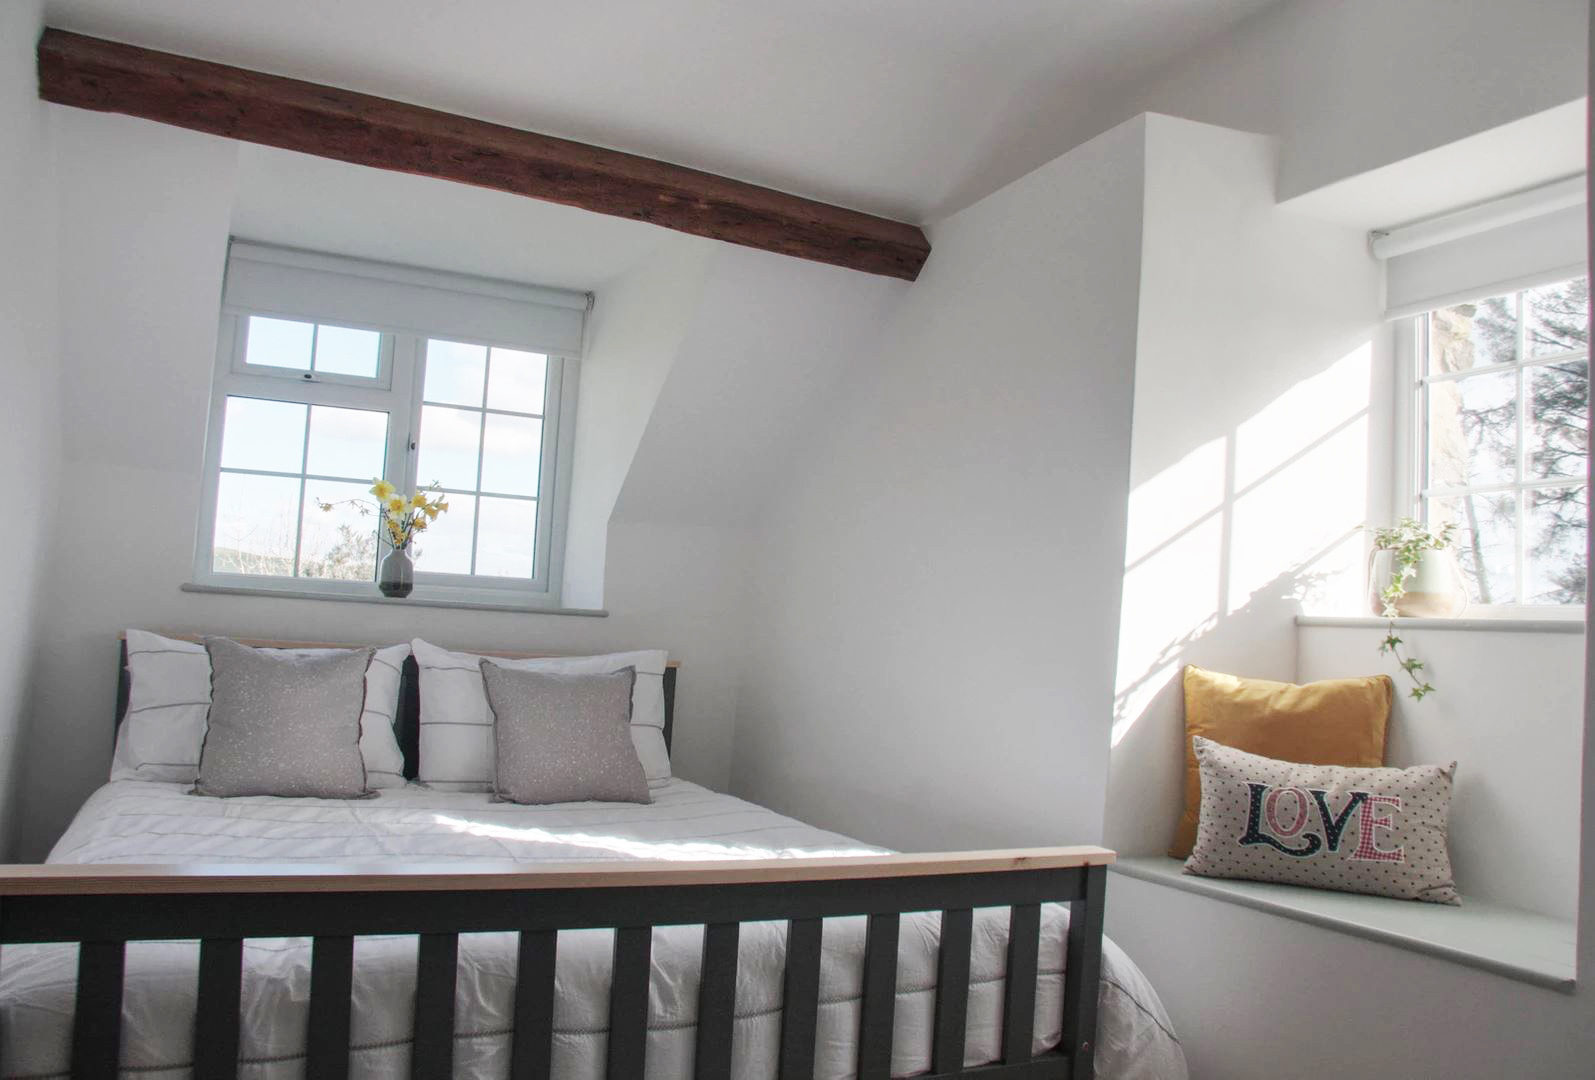 Nestled beneath the eaves, this bright bedroom is cool and cosy. Image: Cwellyn Dream